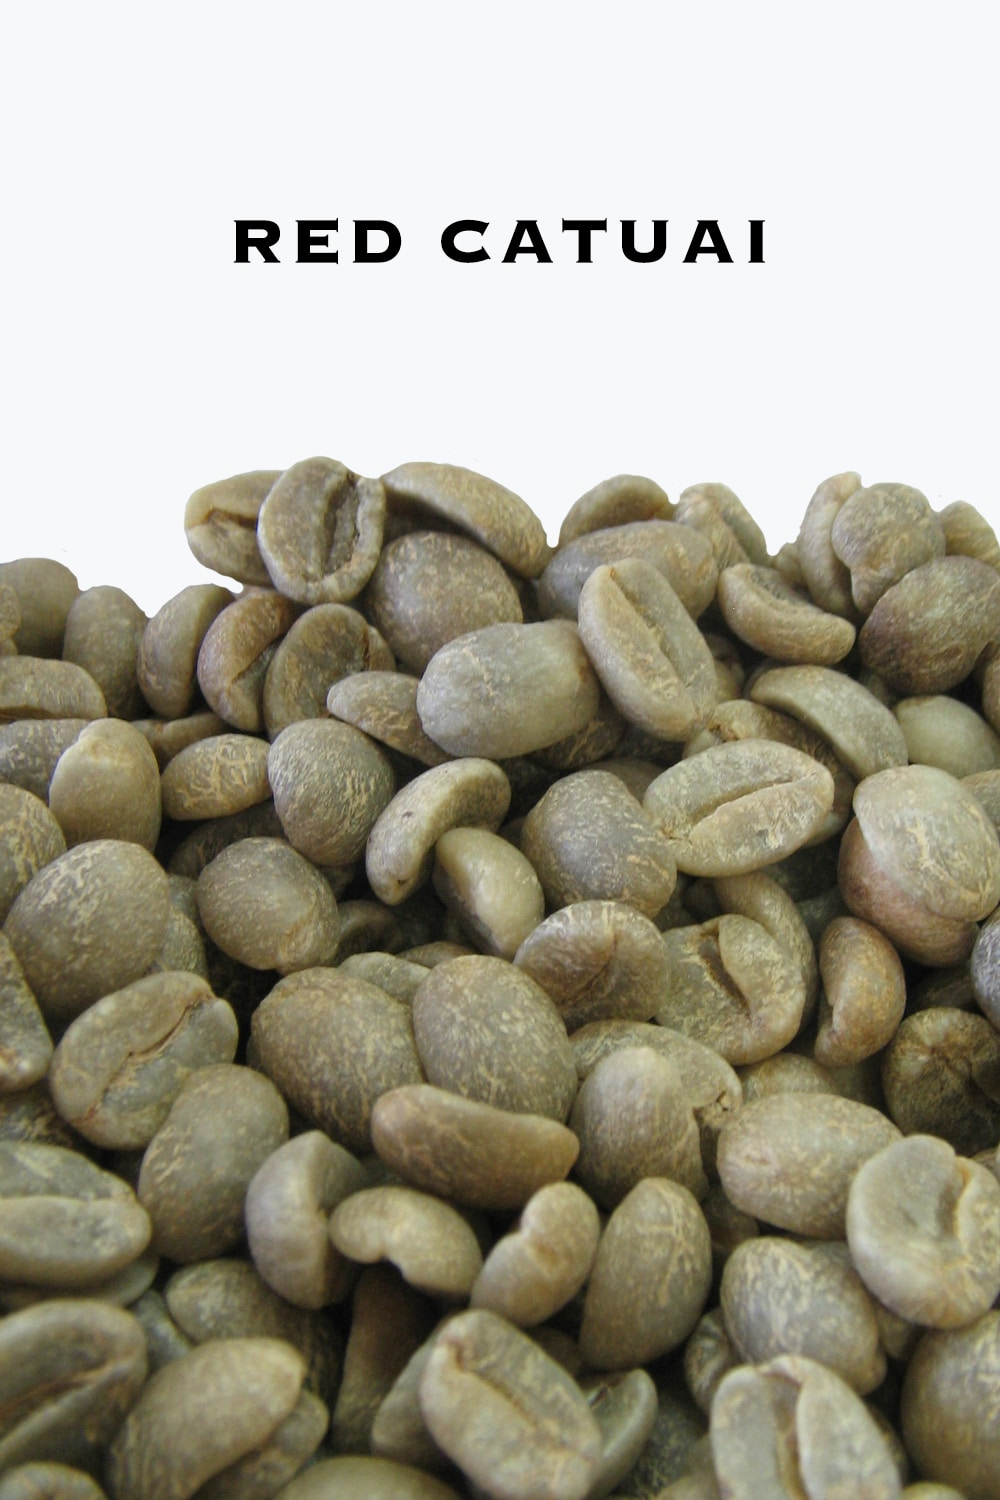 Red Catuai Green Coffee